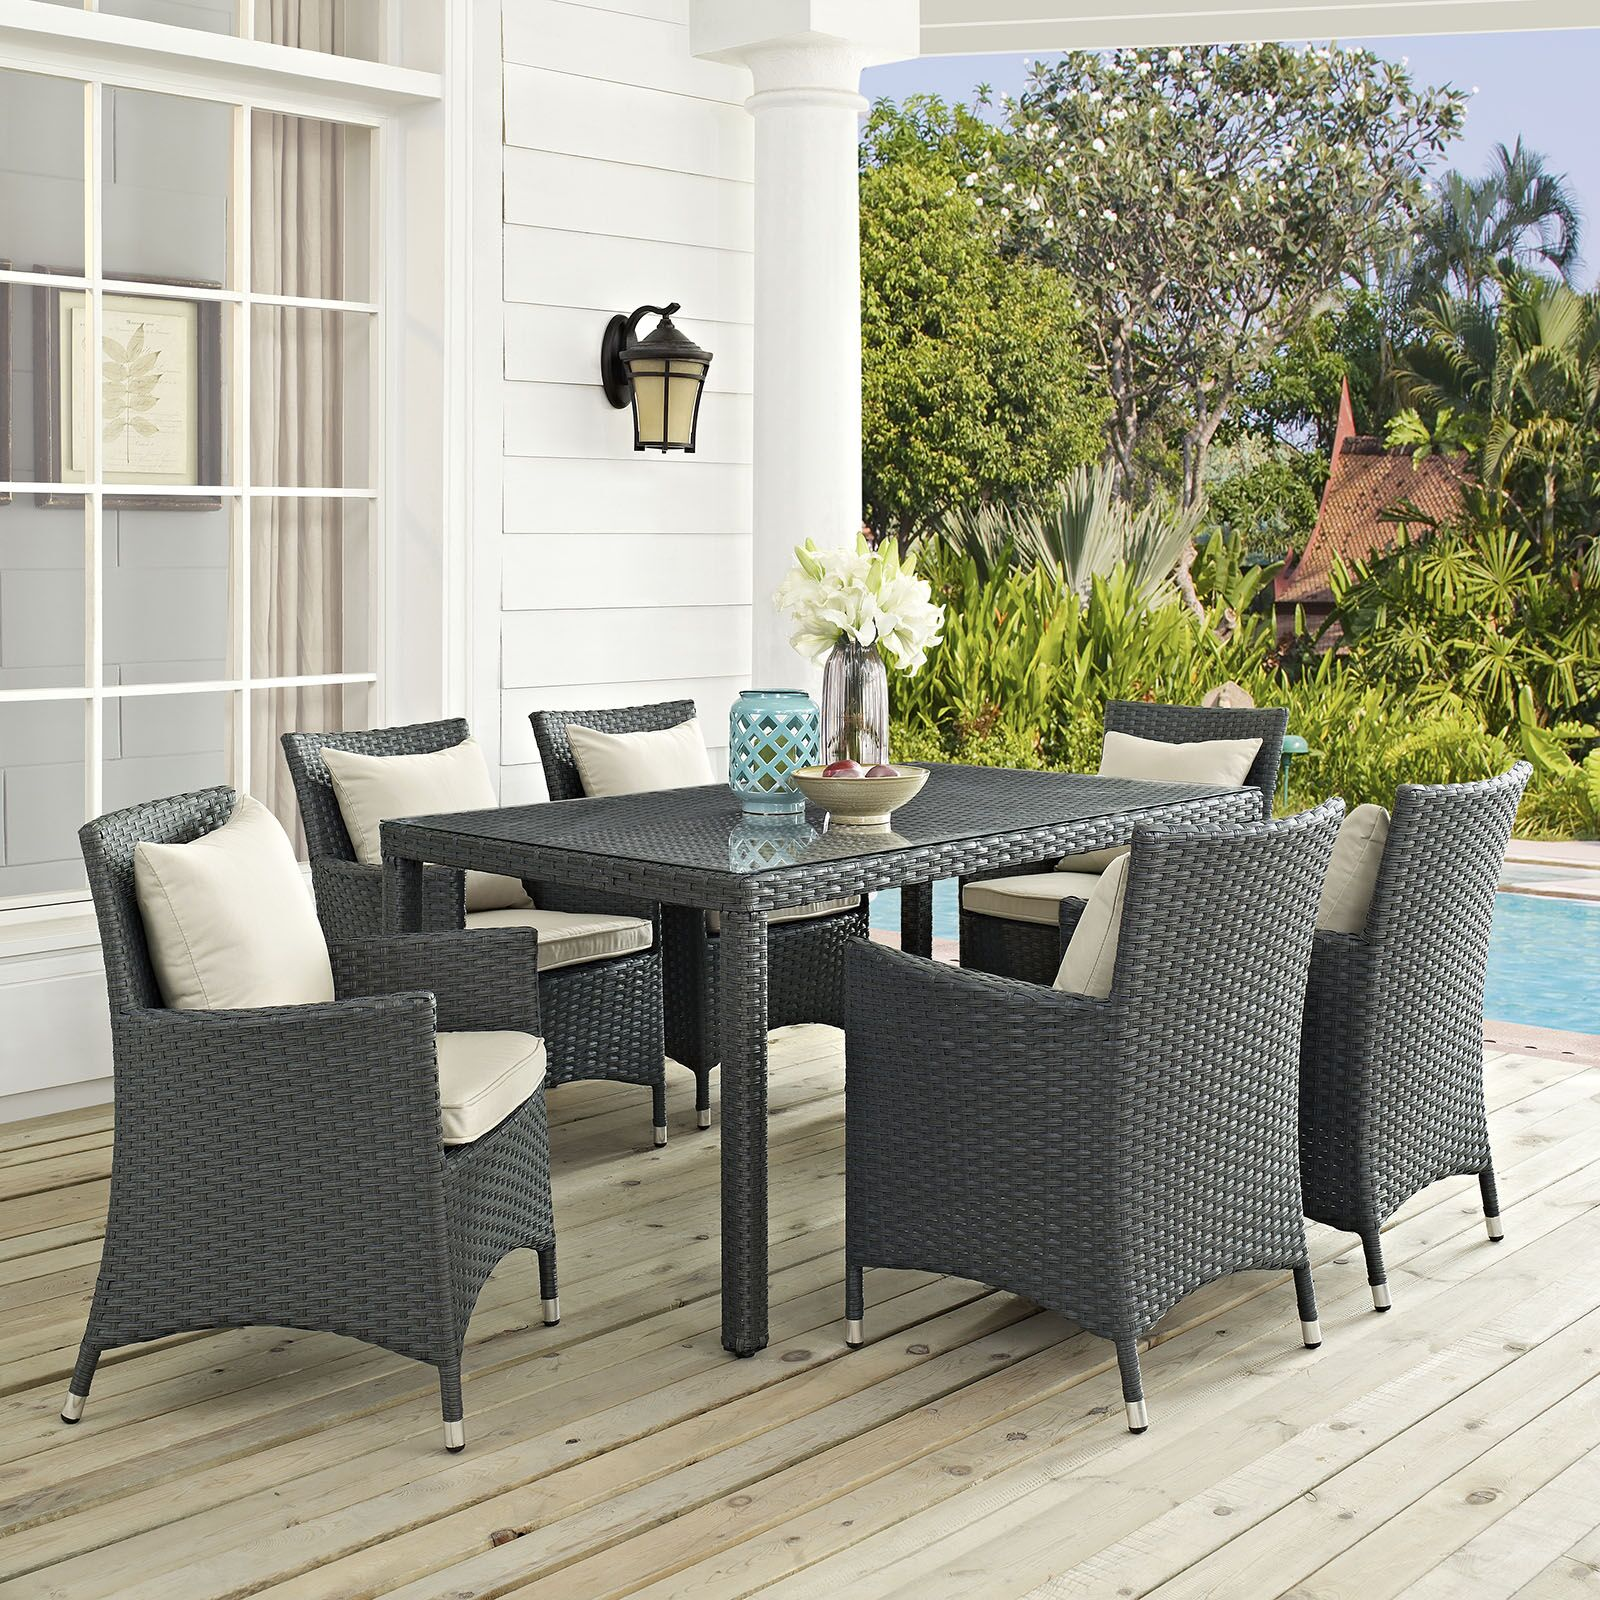 Tripp 7 Piece Dinning Set with Cushions Cushion Color: Beige